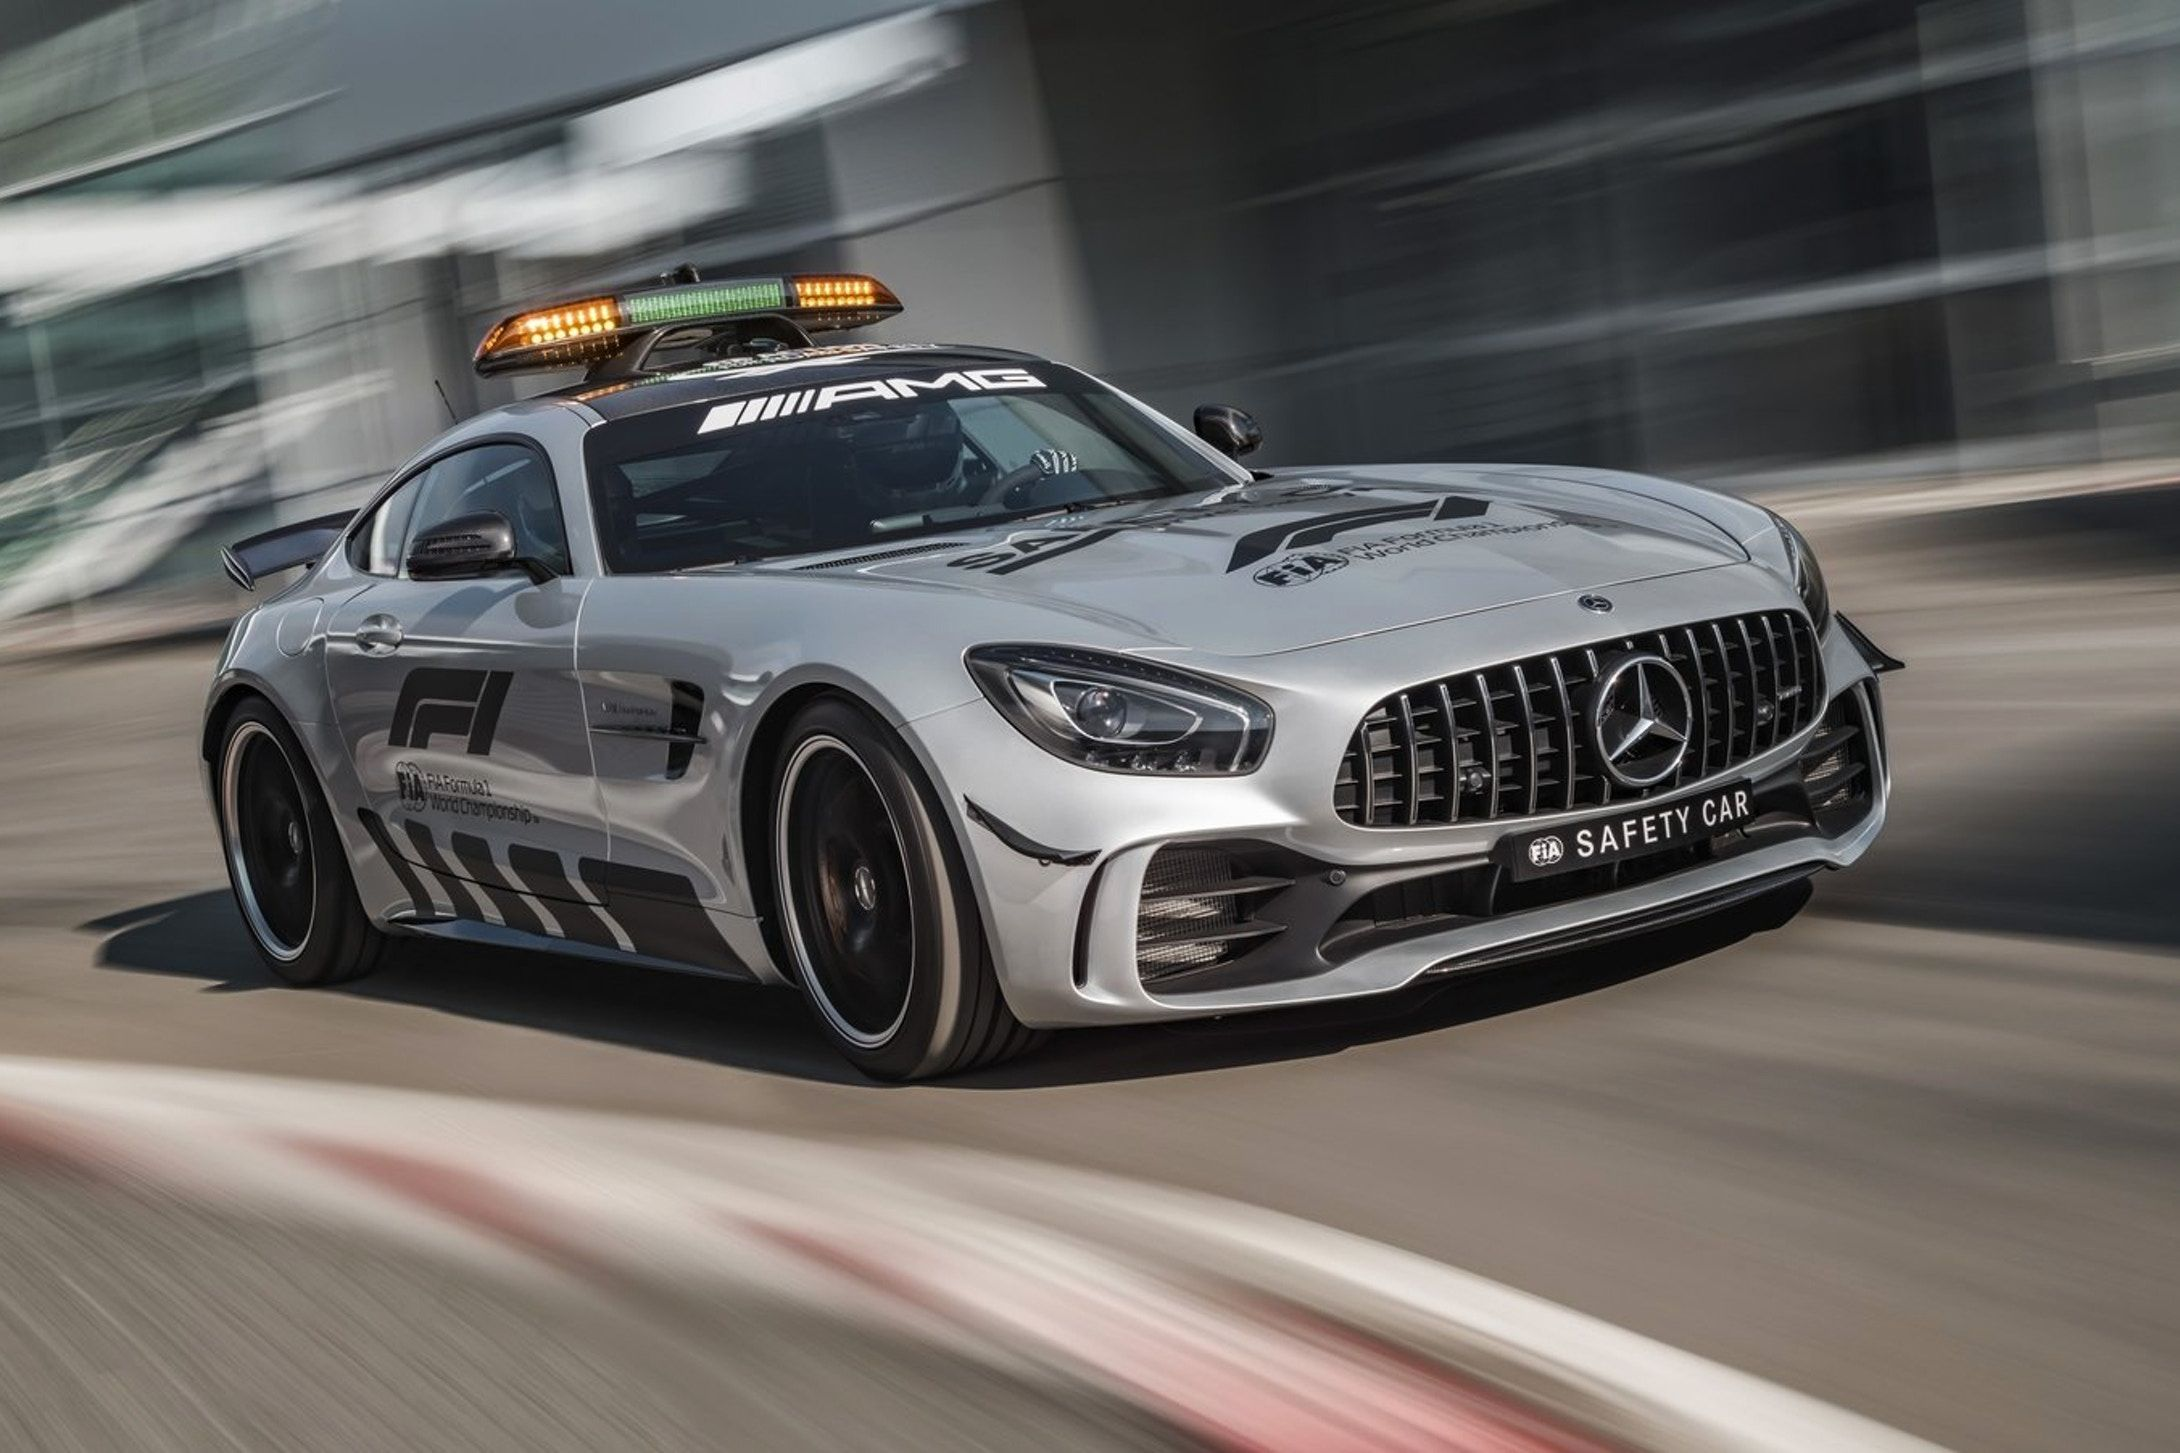 Mercedes Benz S Most Powerful Formula One Safety Car To Date Car Safety Mercedes Amg Gt R Mercedes Benz Amg